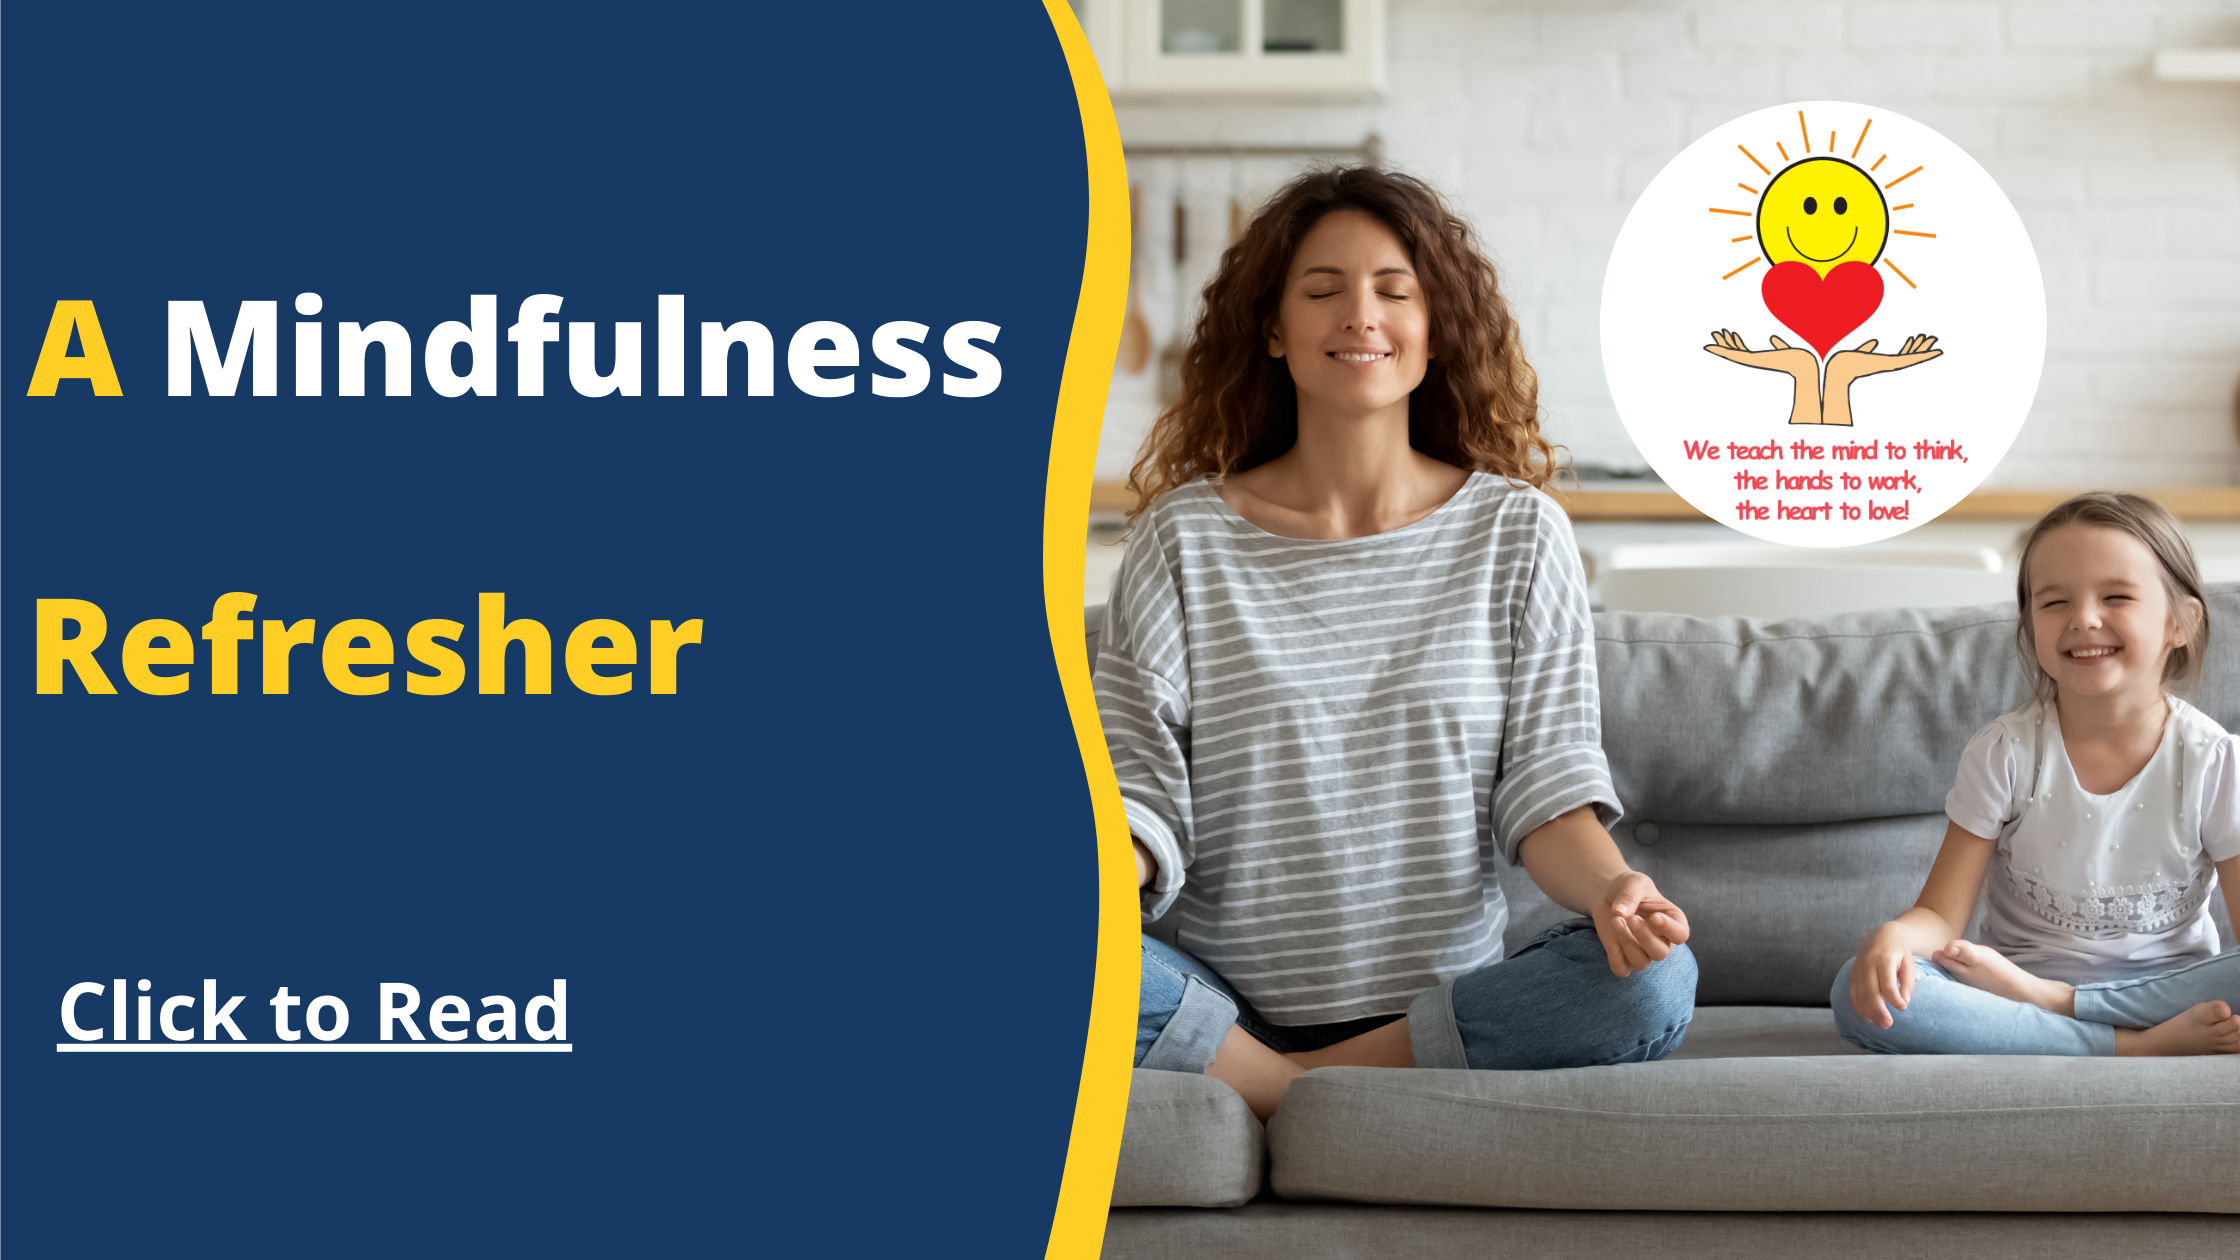 A Mindfulness Refresher